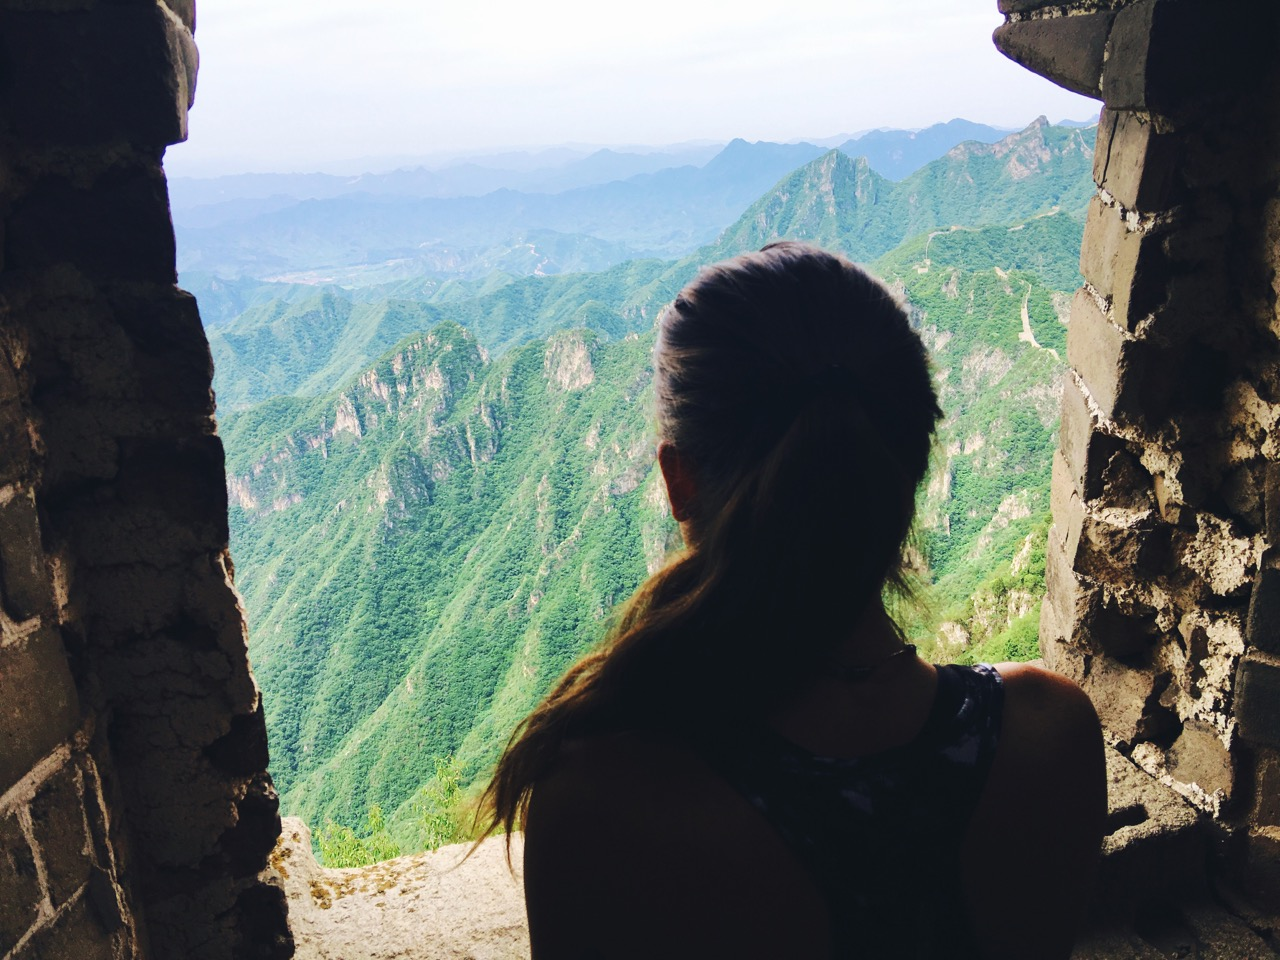 Contemplation at The Great Wall